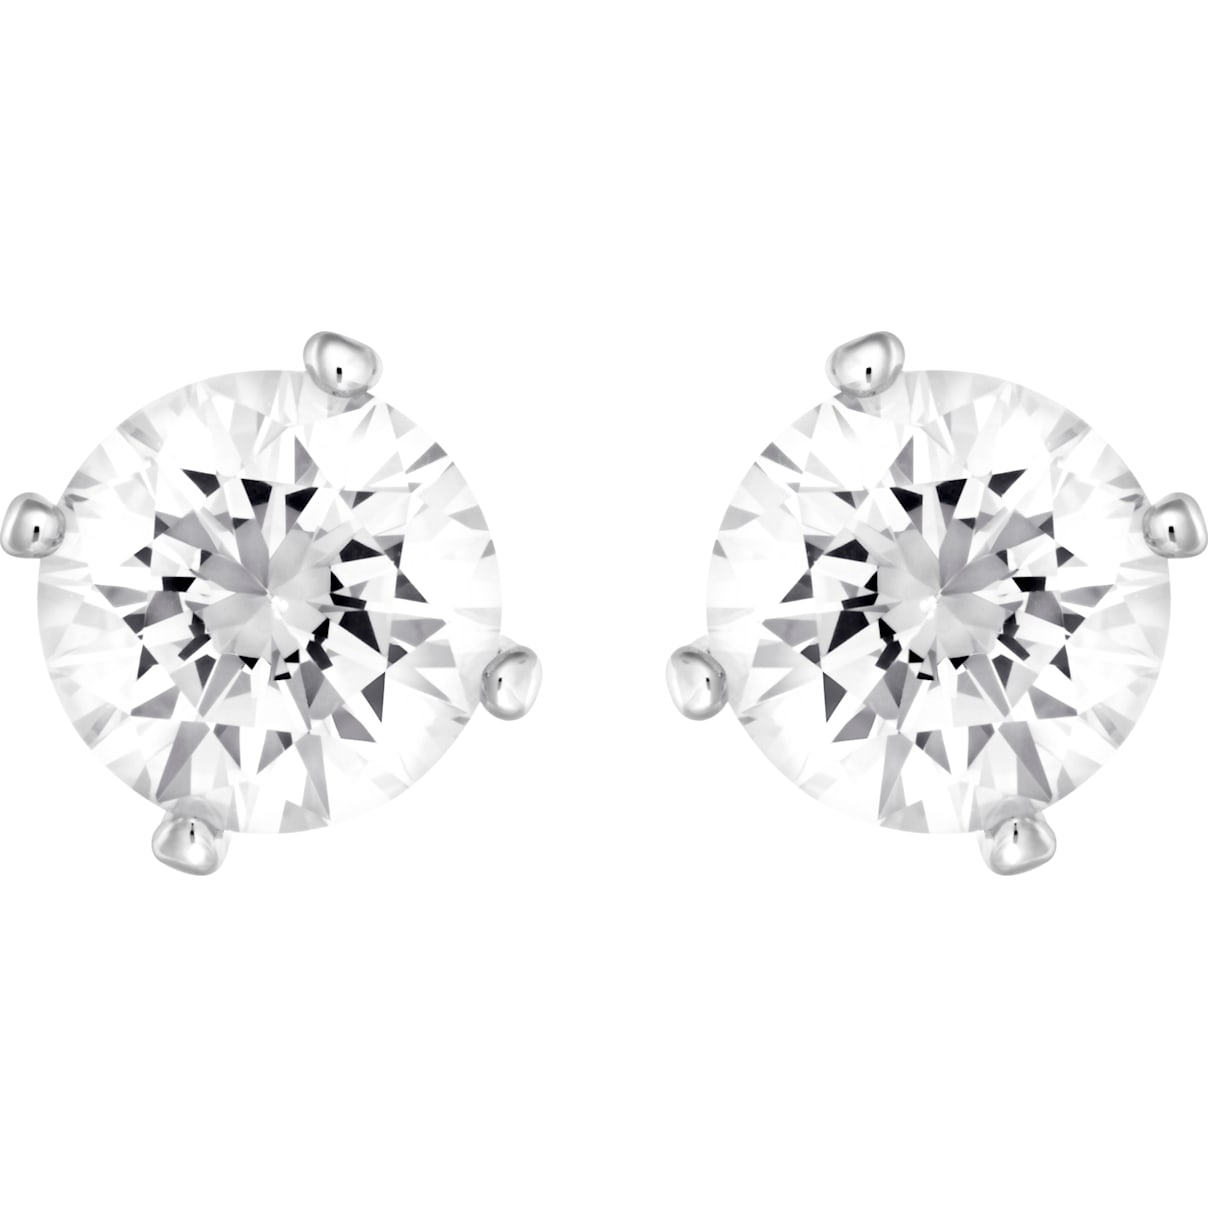 Swarovski Attract Pearl Pierced Earrings, White, Rhodium plated